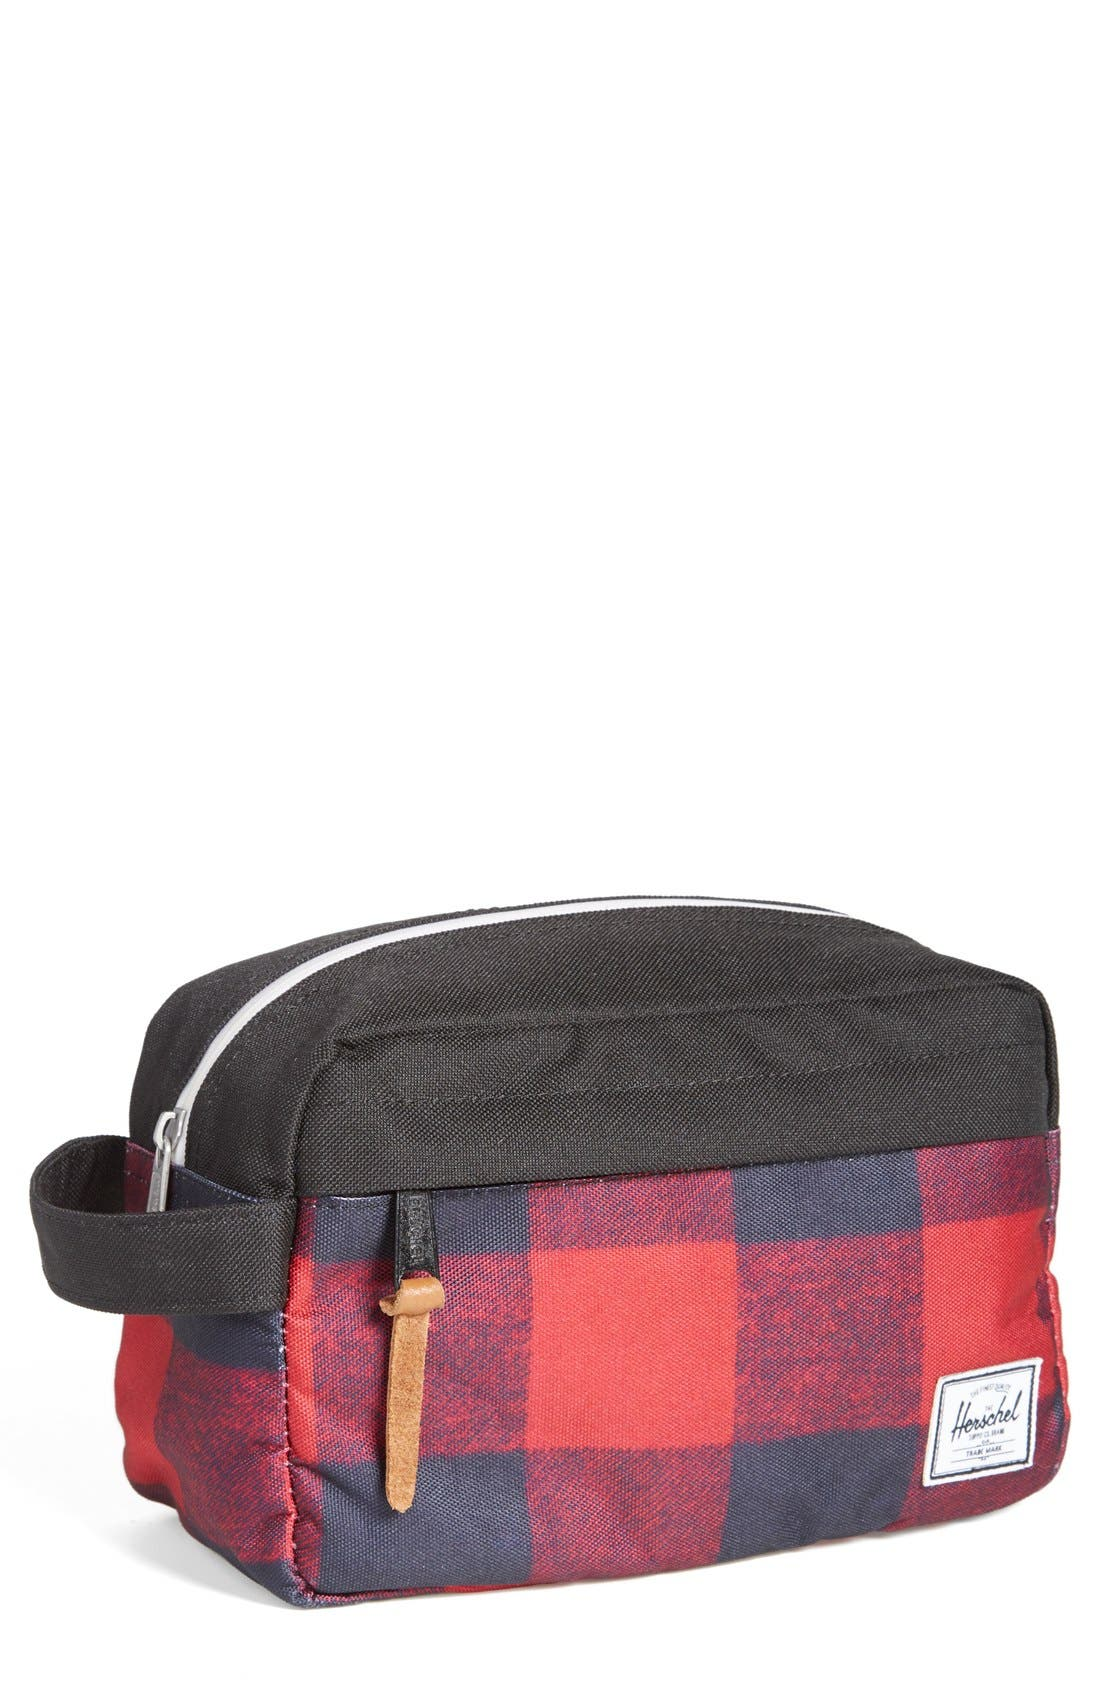 Main Image - Herschel Supply Co. 'Chapter Buffalo' Toiletry Kit